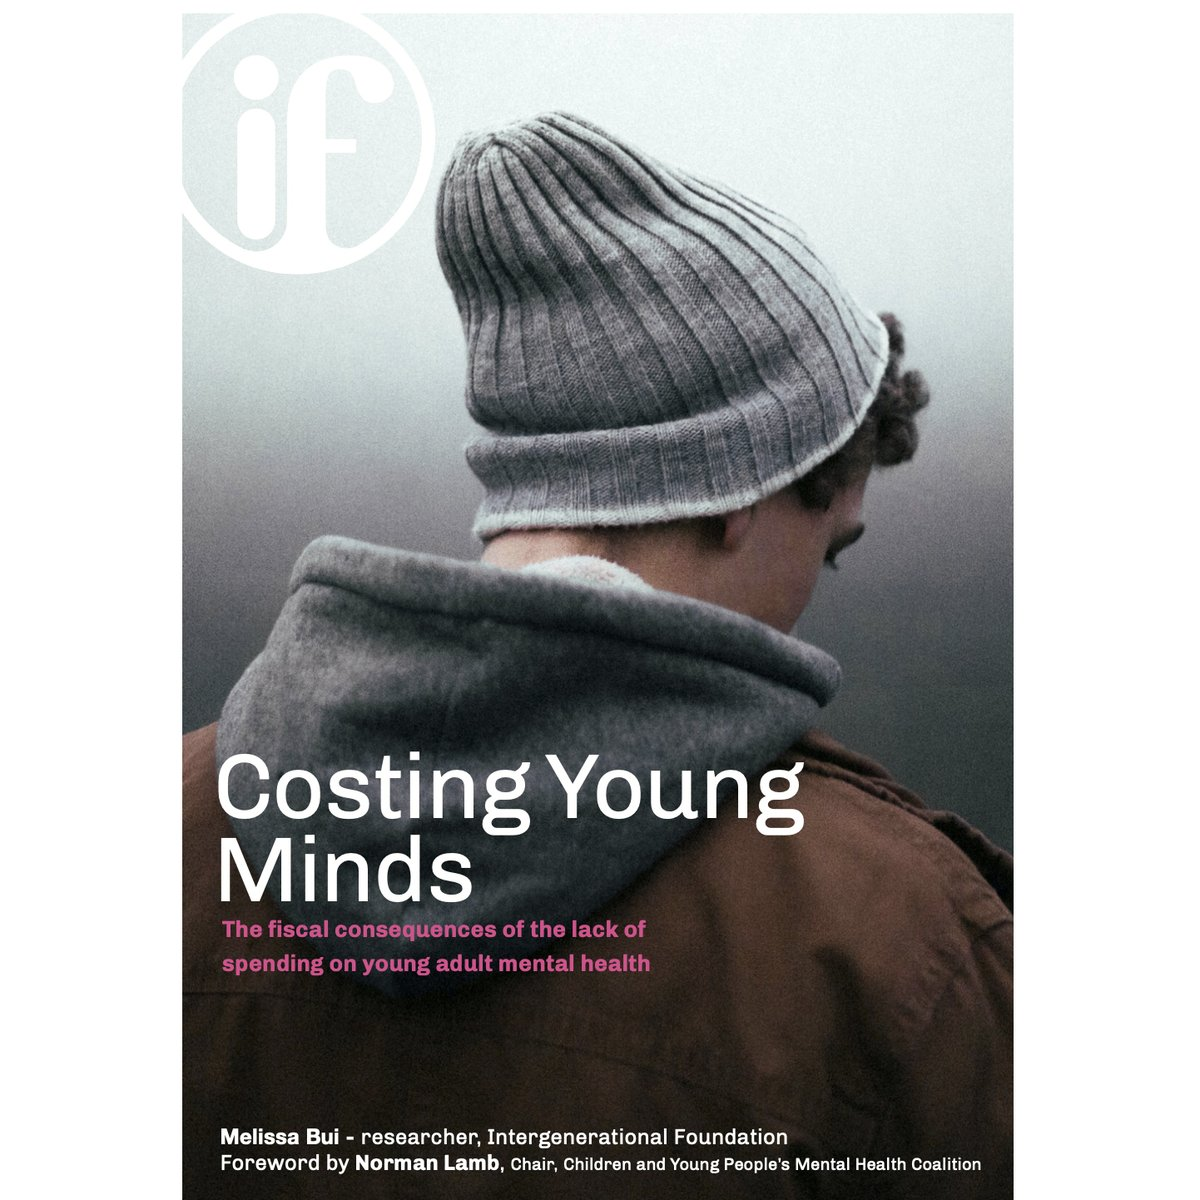 @RishiSunak The fiscal consequences of a lack of spending on young people: if.org.uk/research-posts…